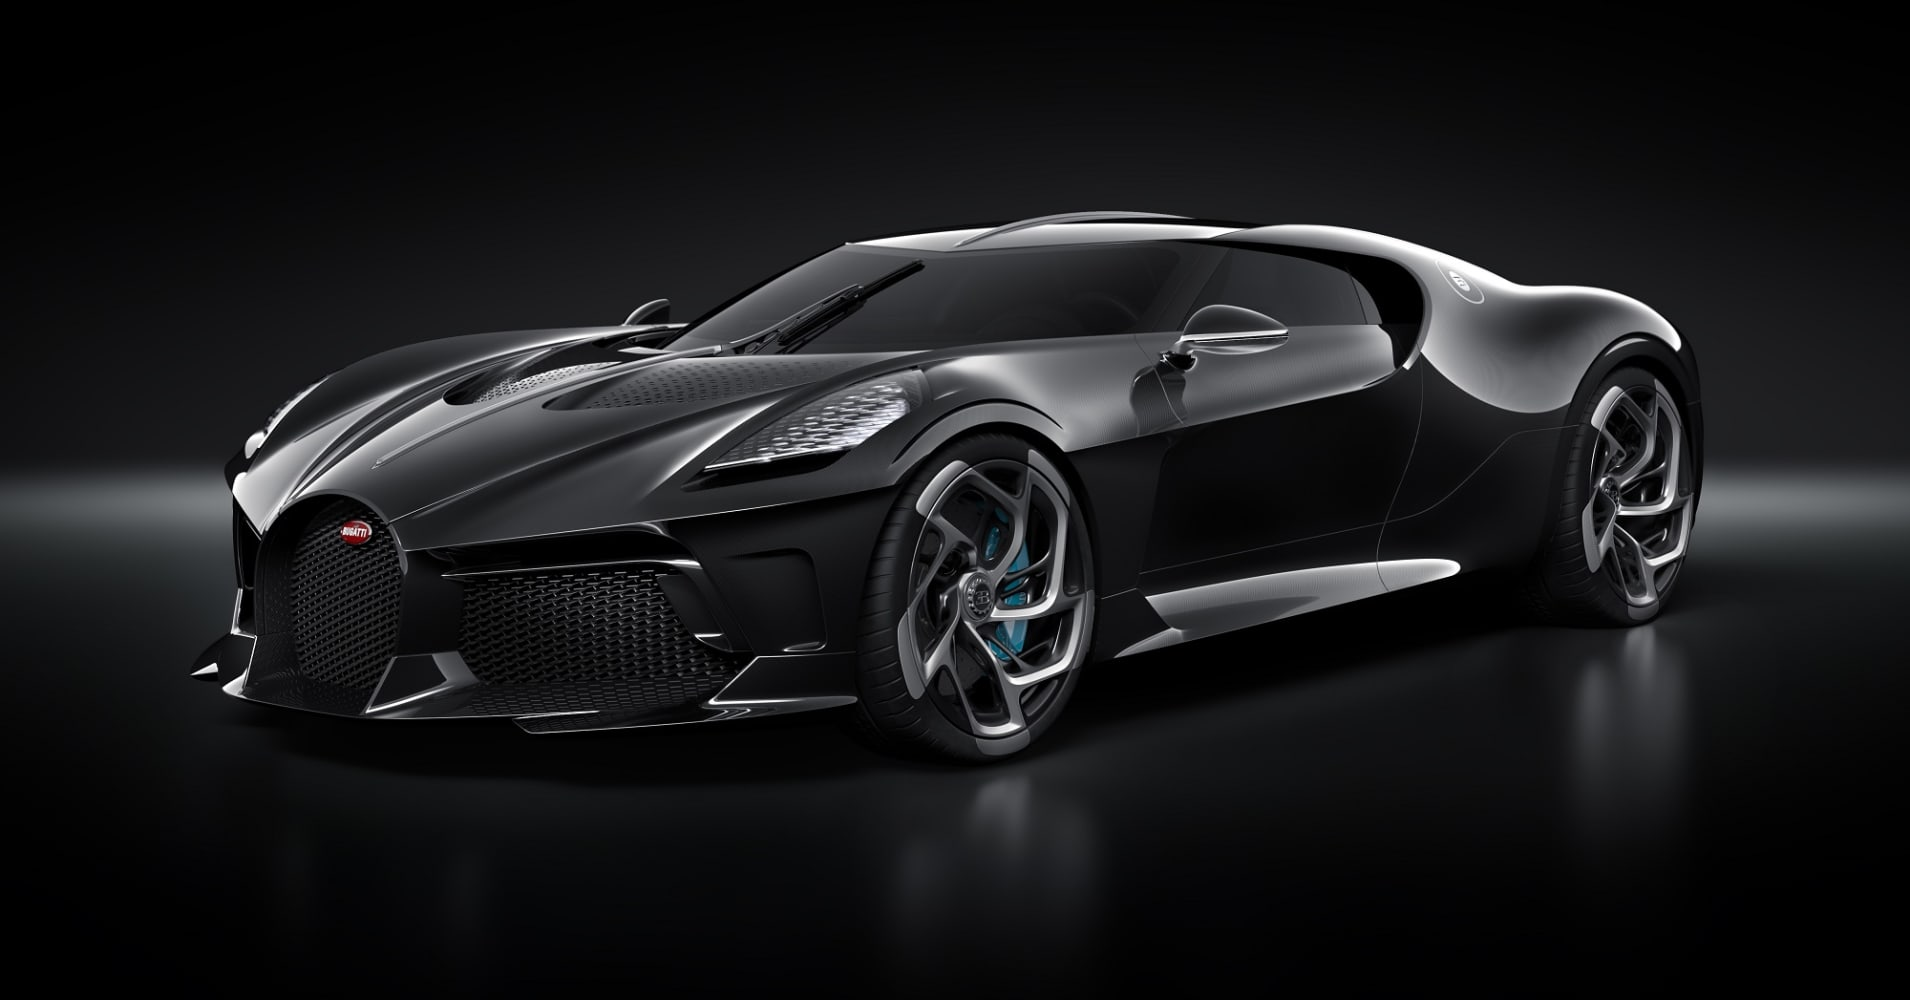 Take A Look Bugatti S La Voiture Noire Car Just Sold For